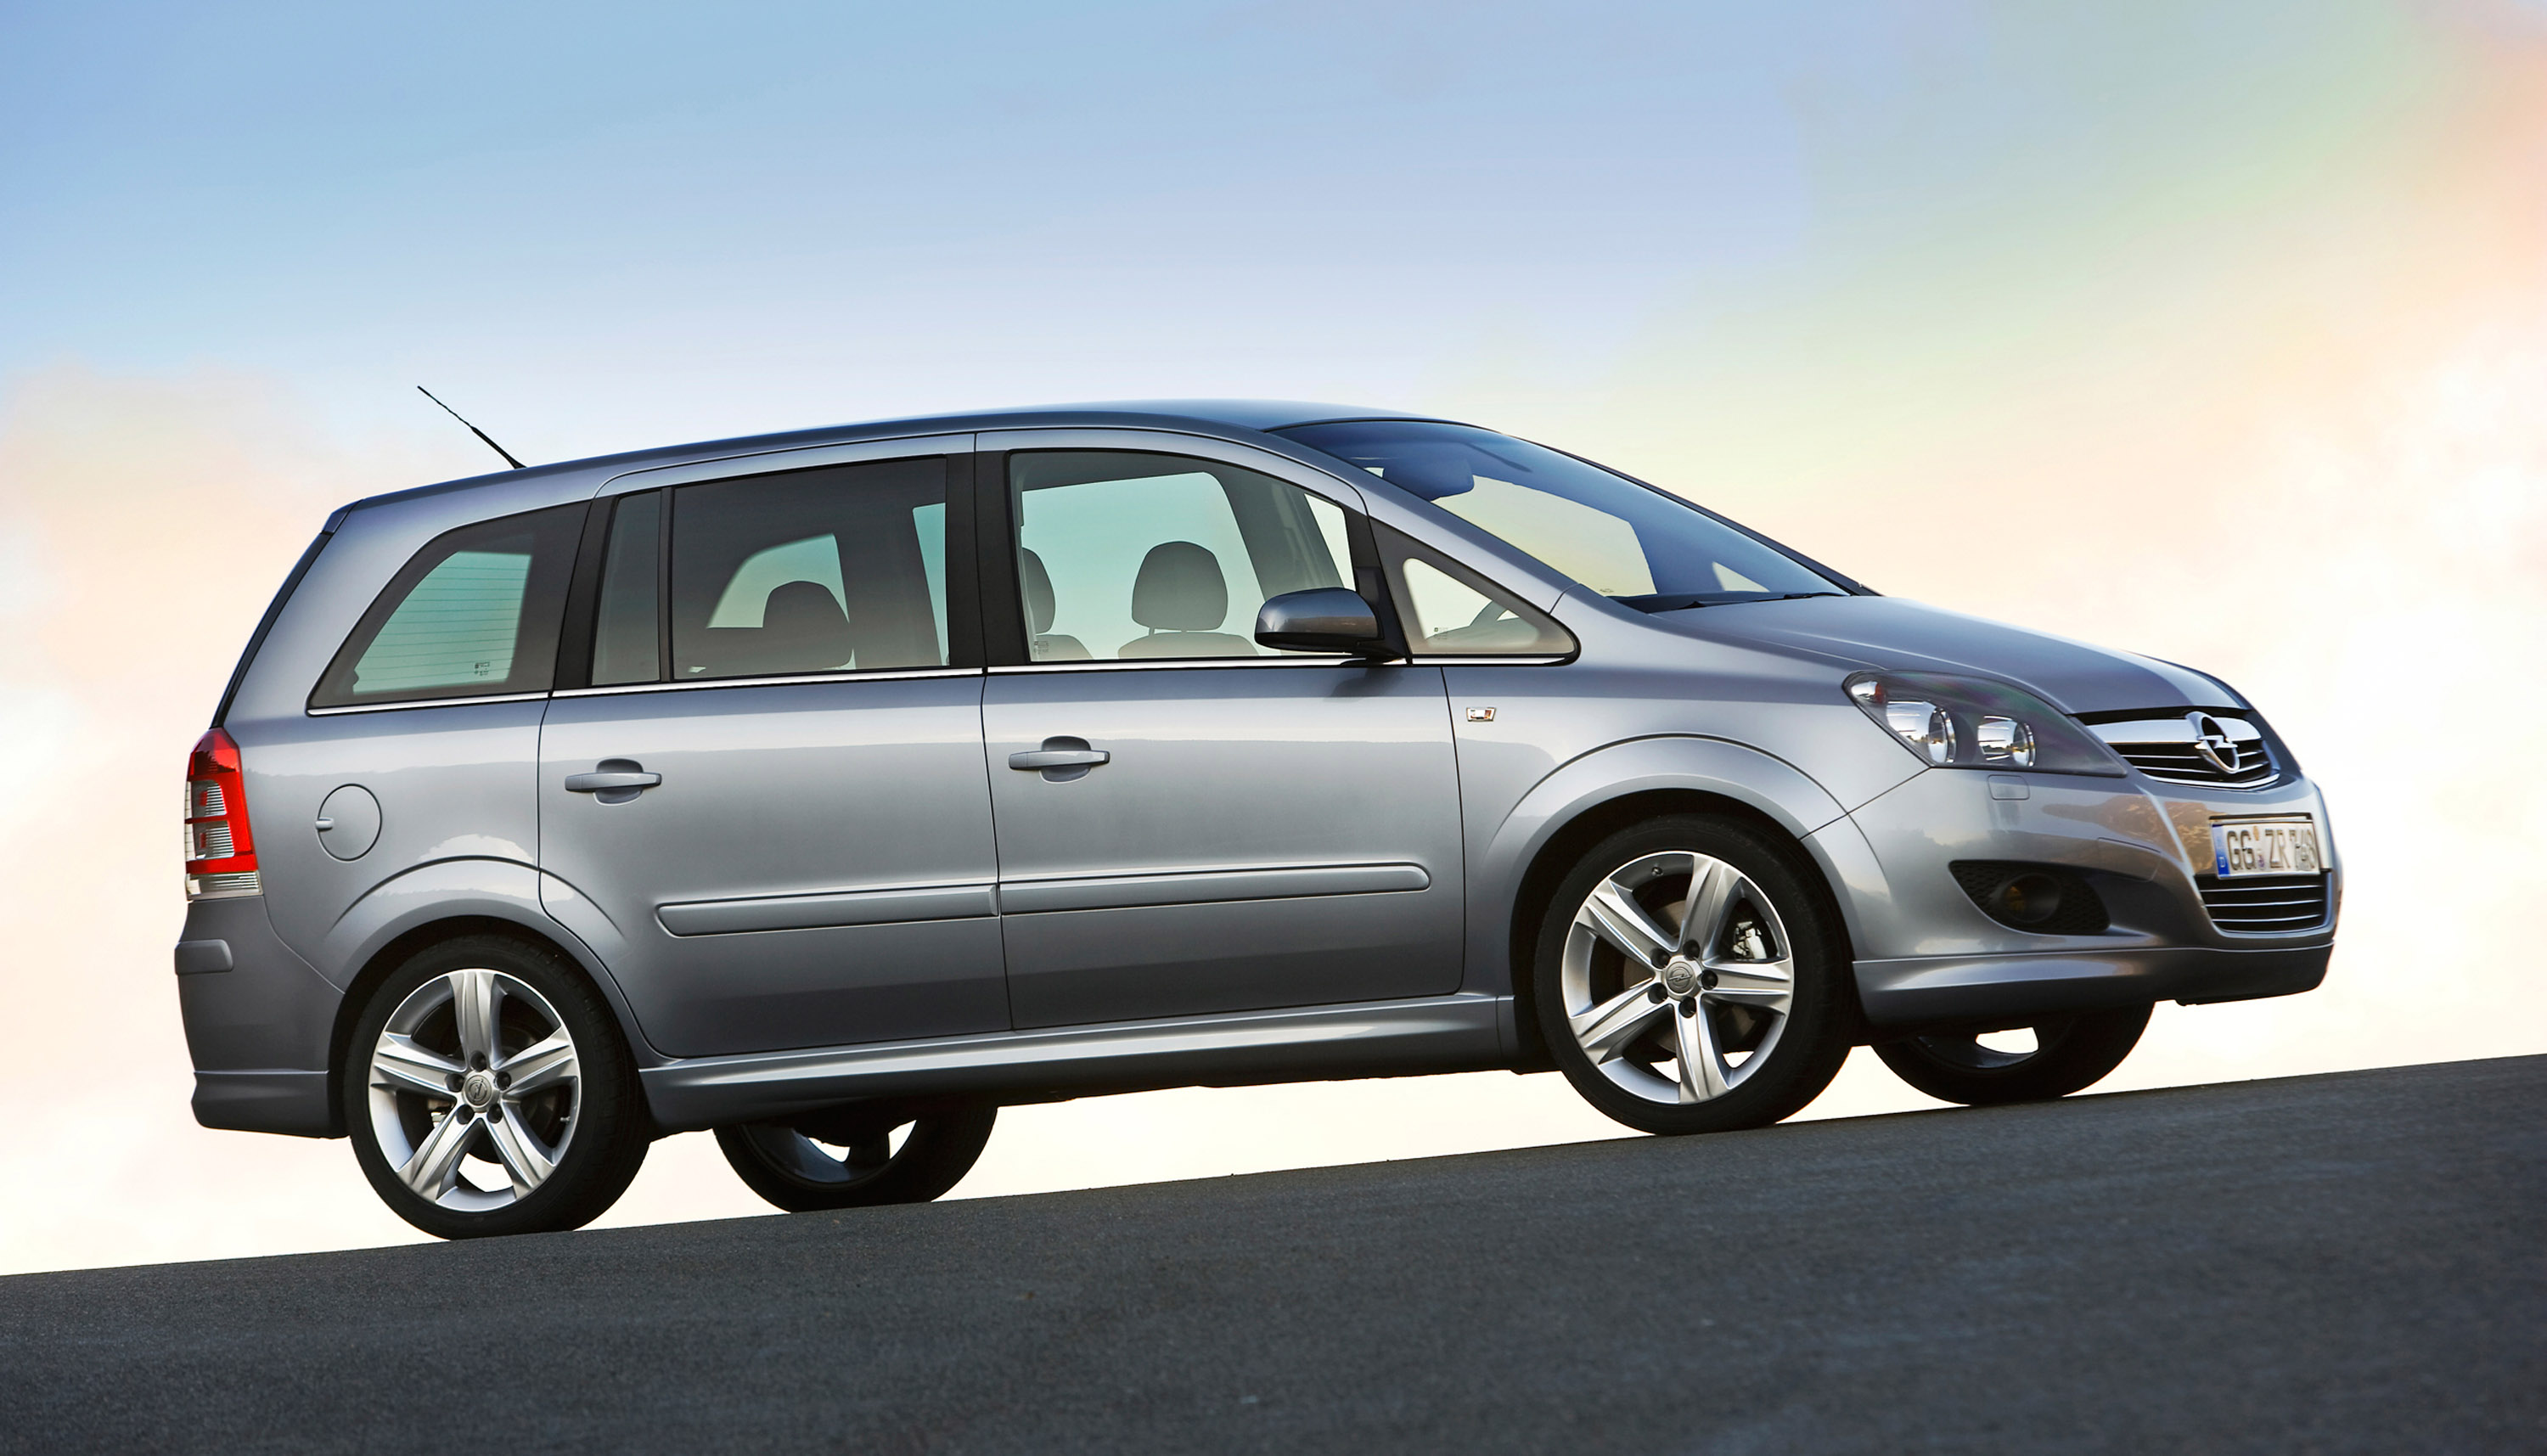 people 39 s choice opel zafira voted most attractive compact van. Black Bedroom Furniture Sets. Home Design Ideas